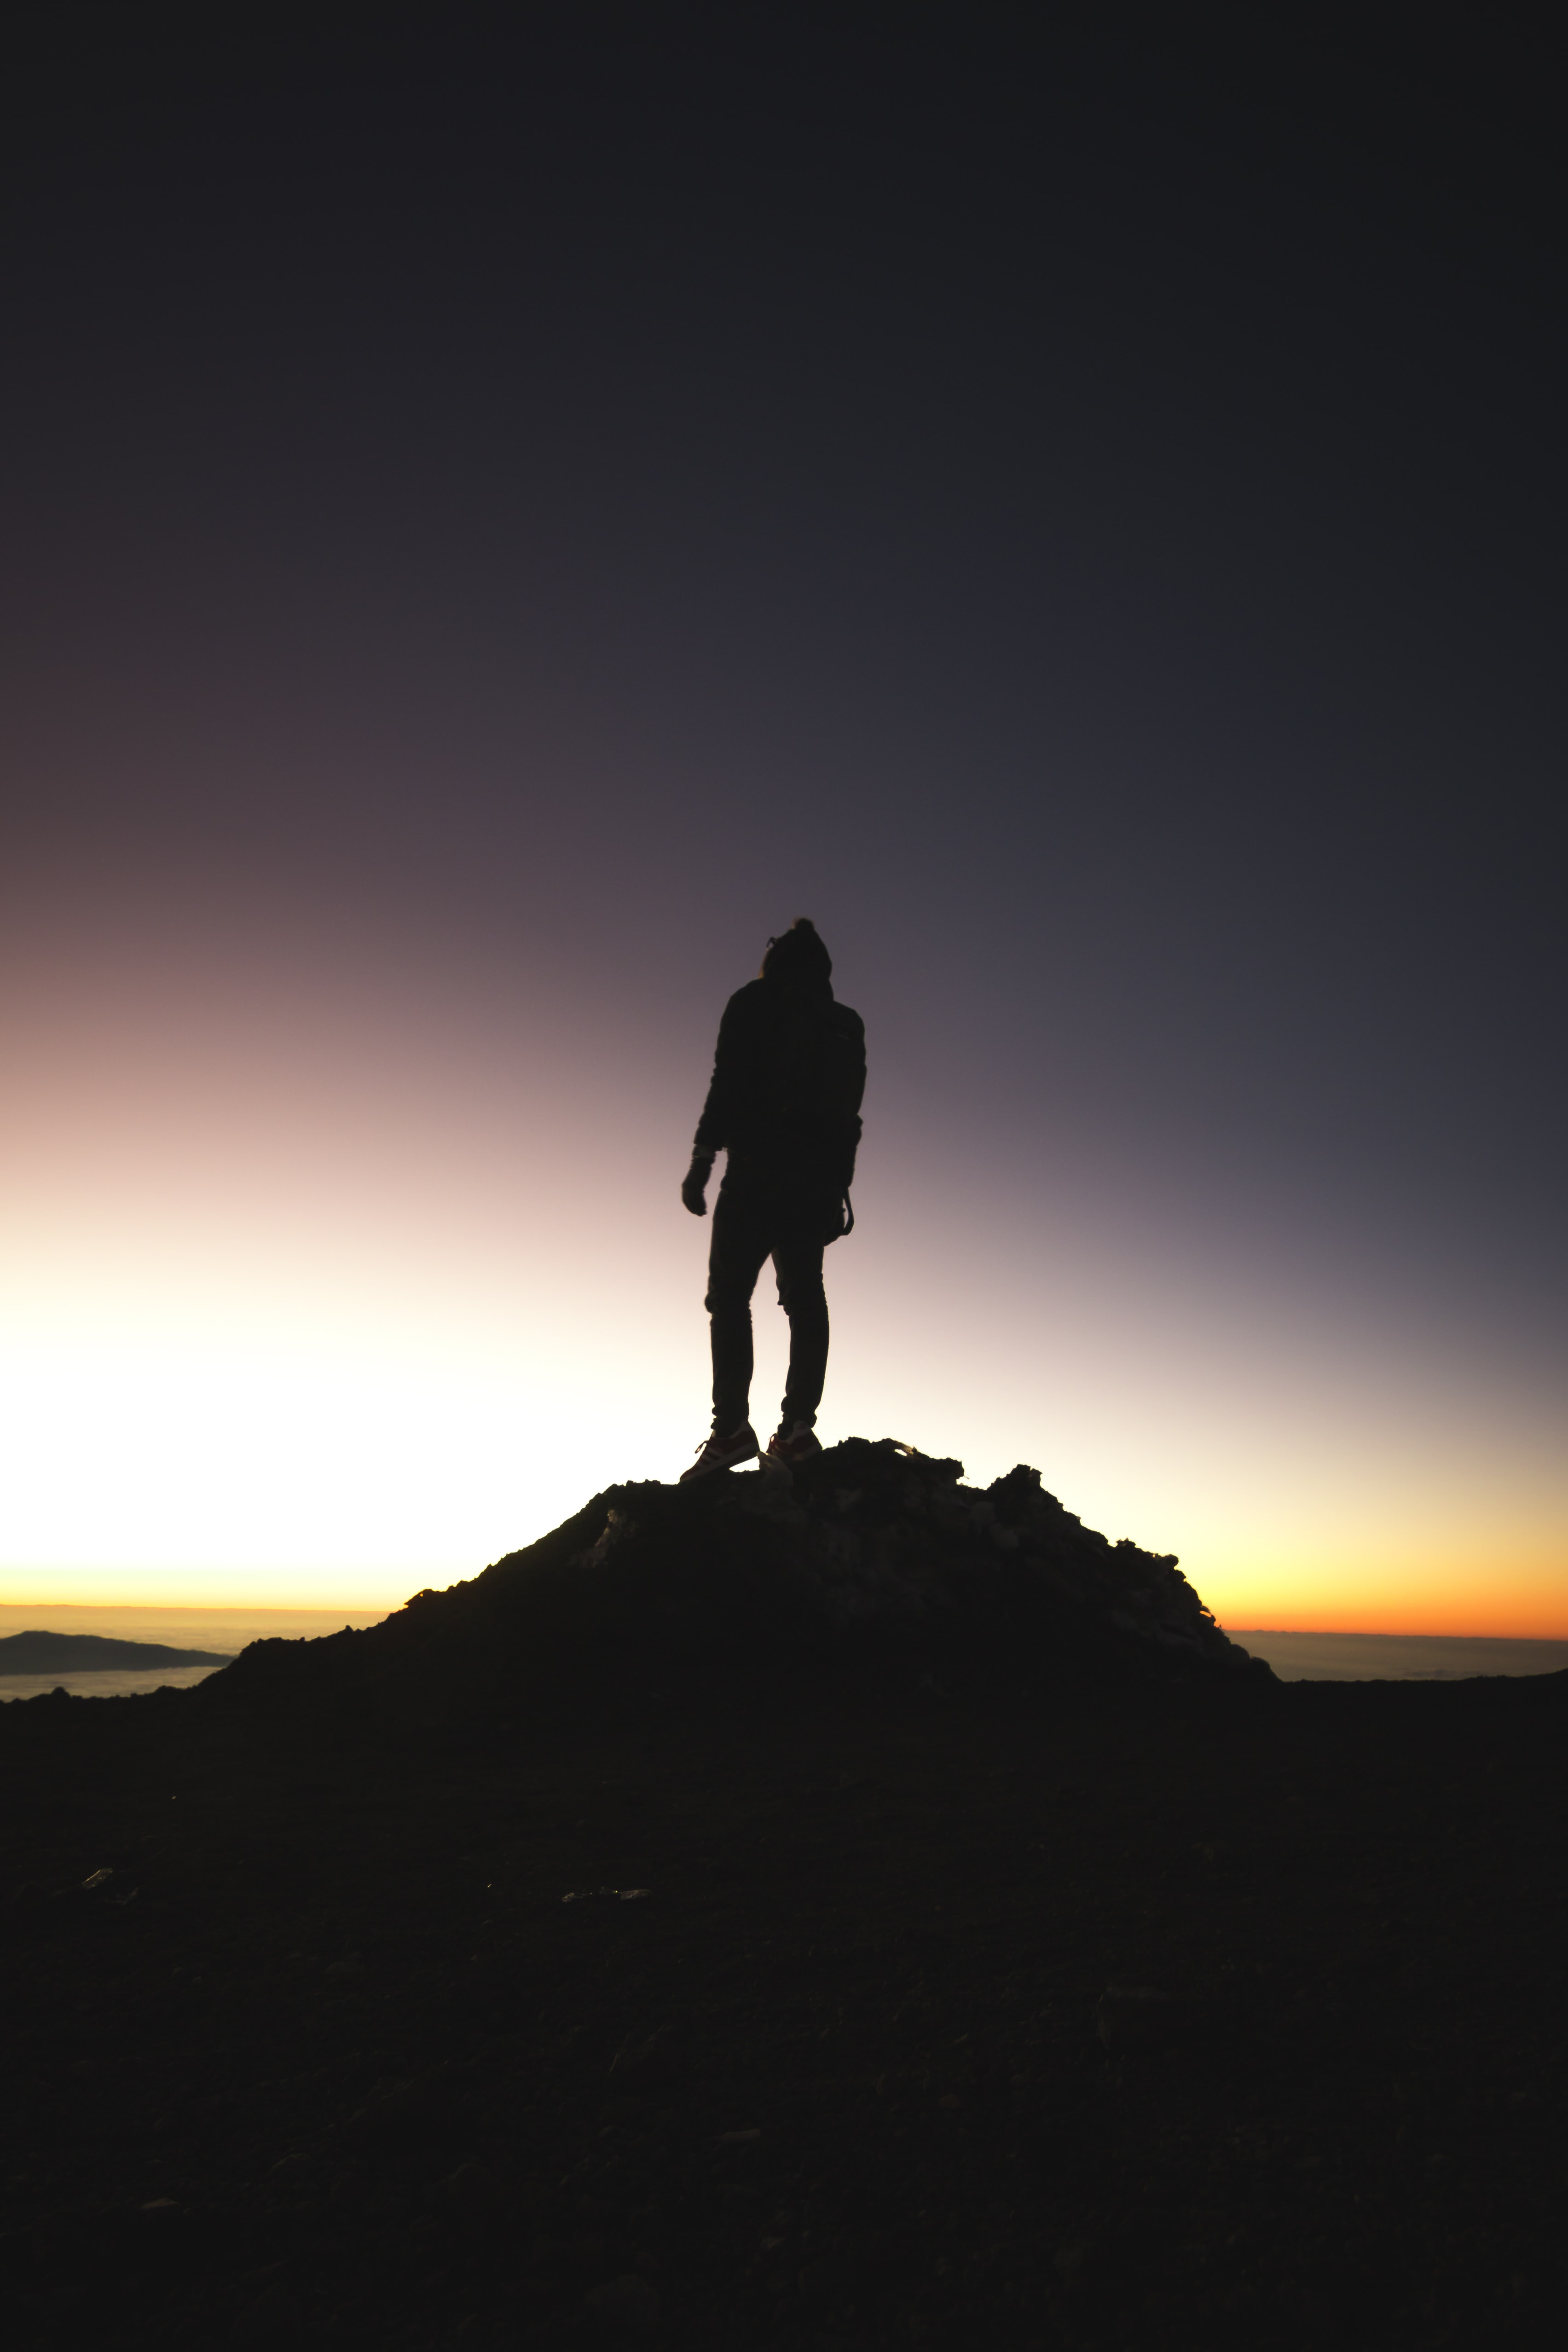 silhouette of person standing near ocean